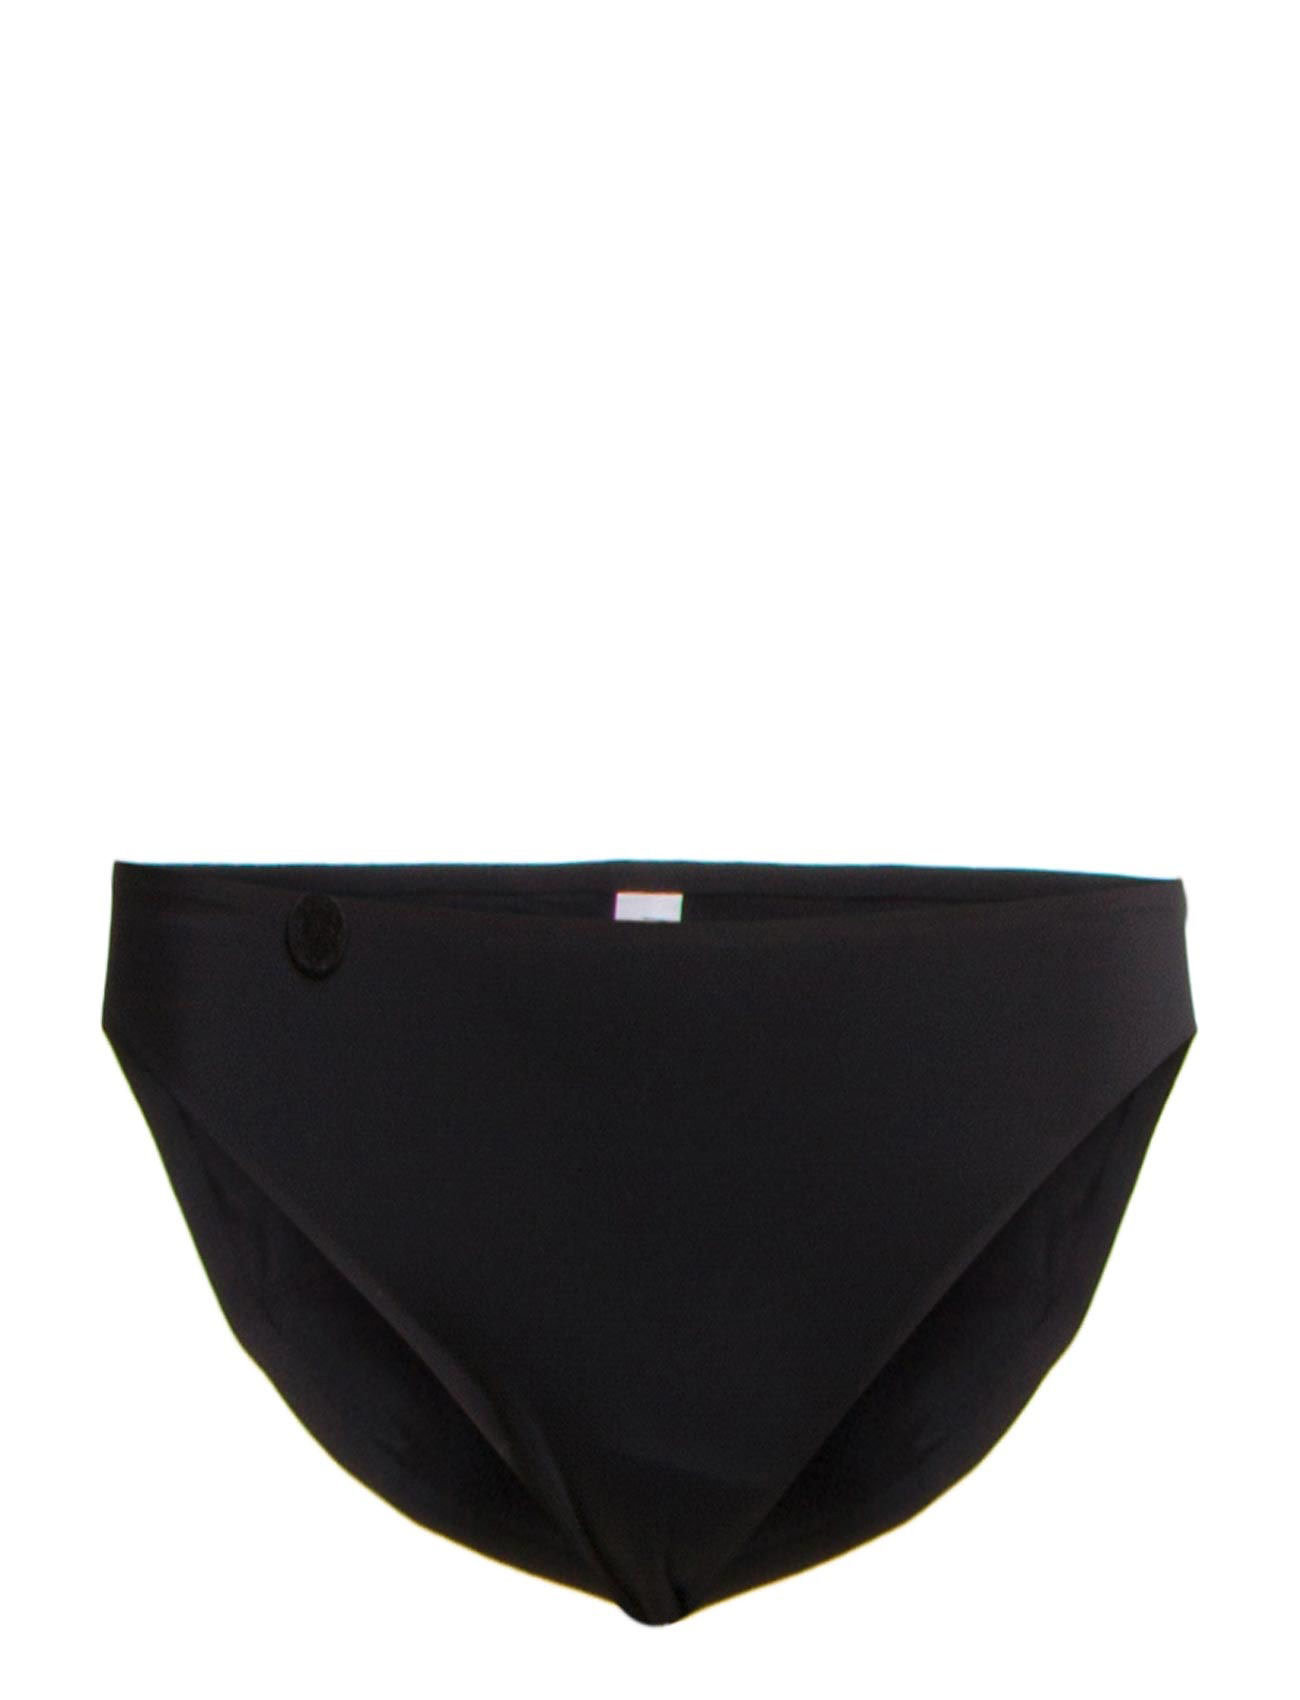 Image of Tom Brief Trusser, Tanga Briefs Sort Marie Jo (2382466499)